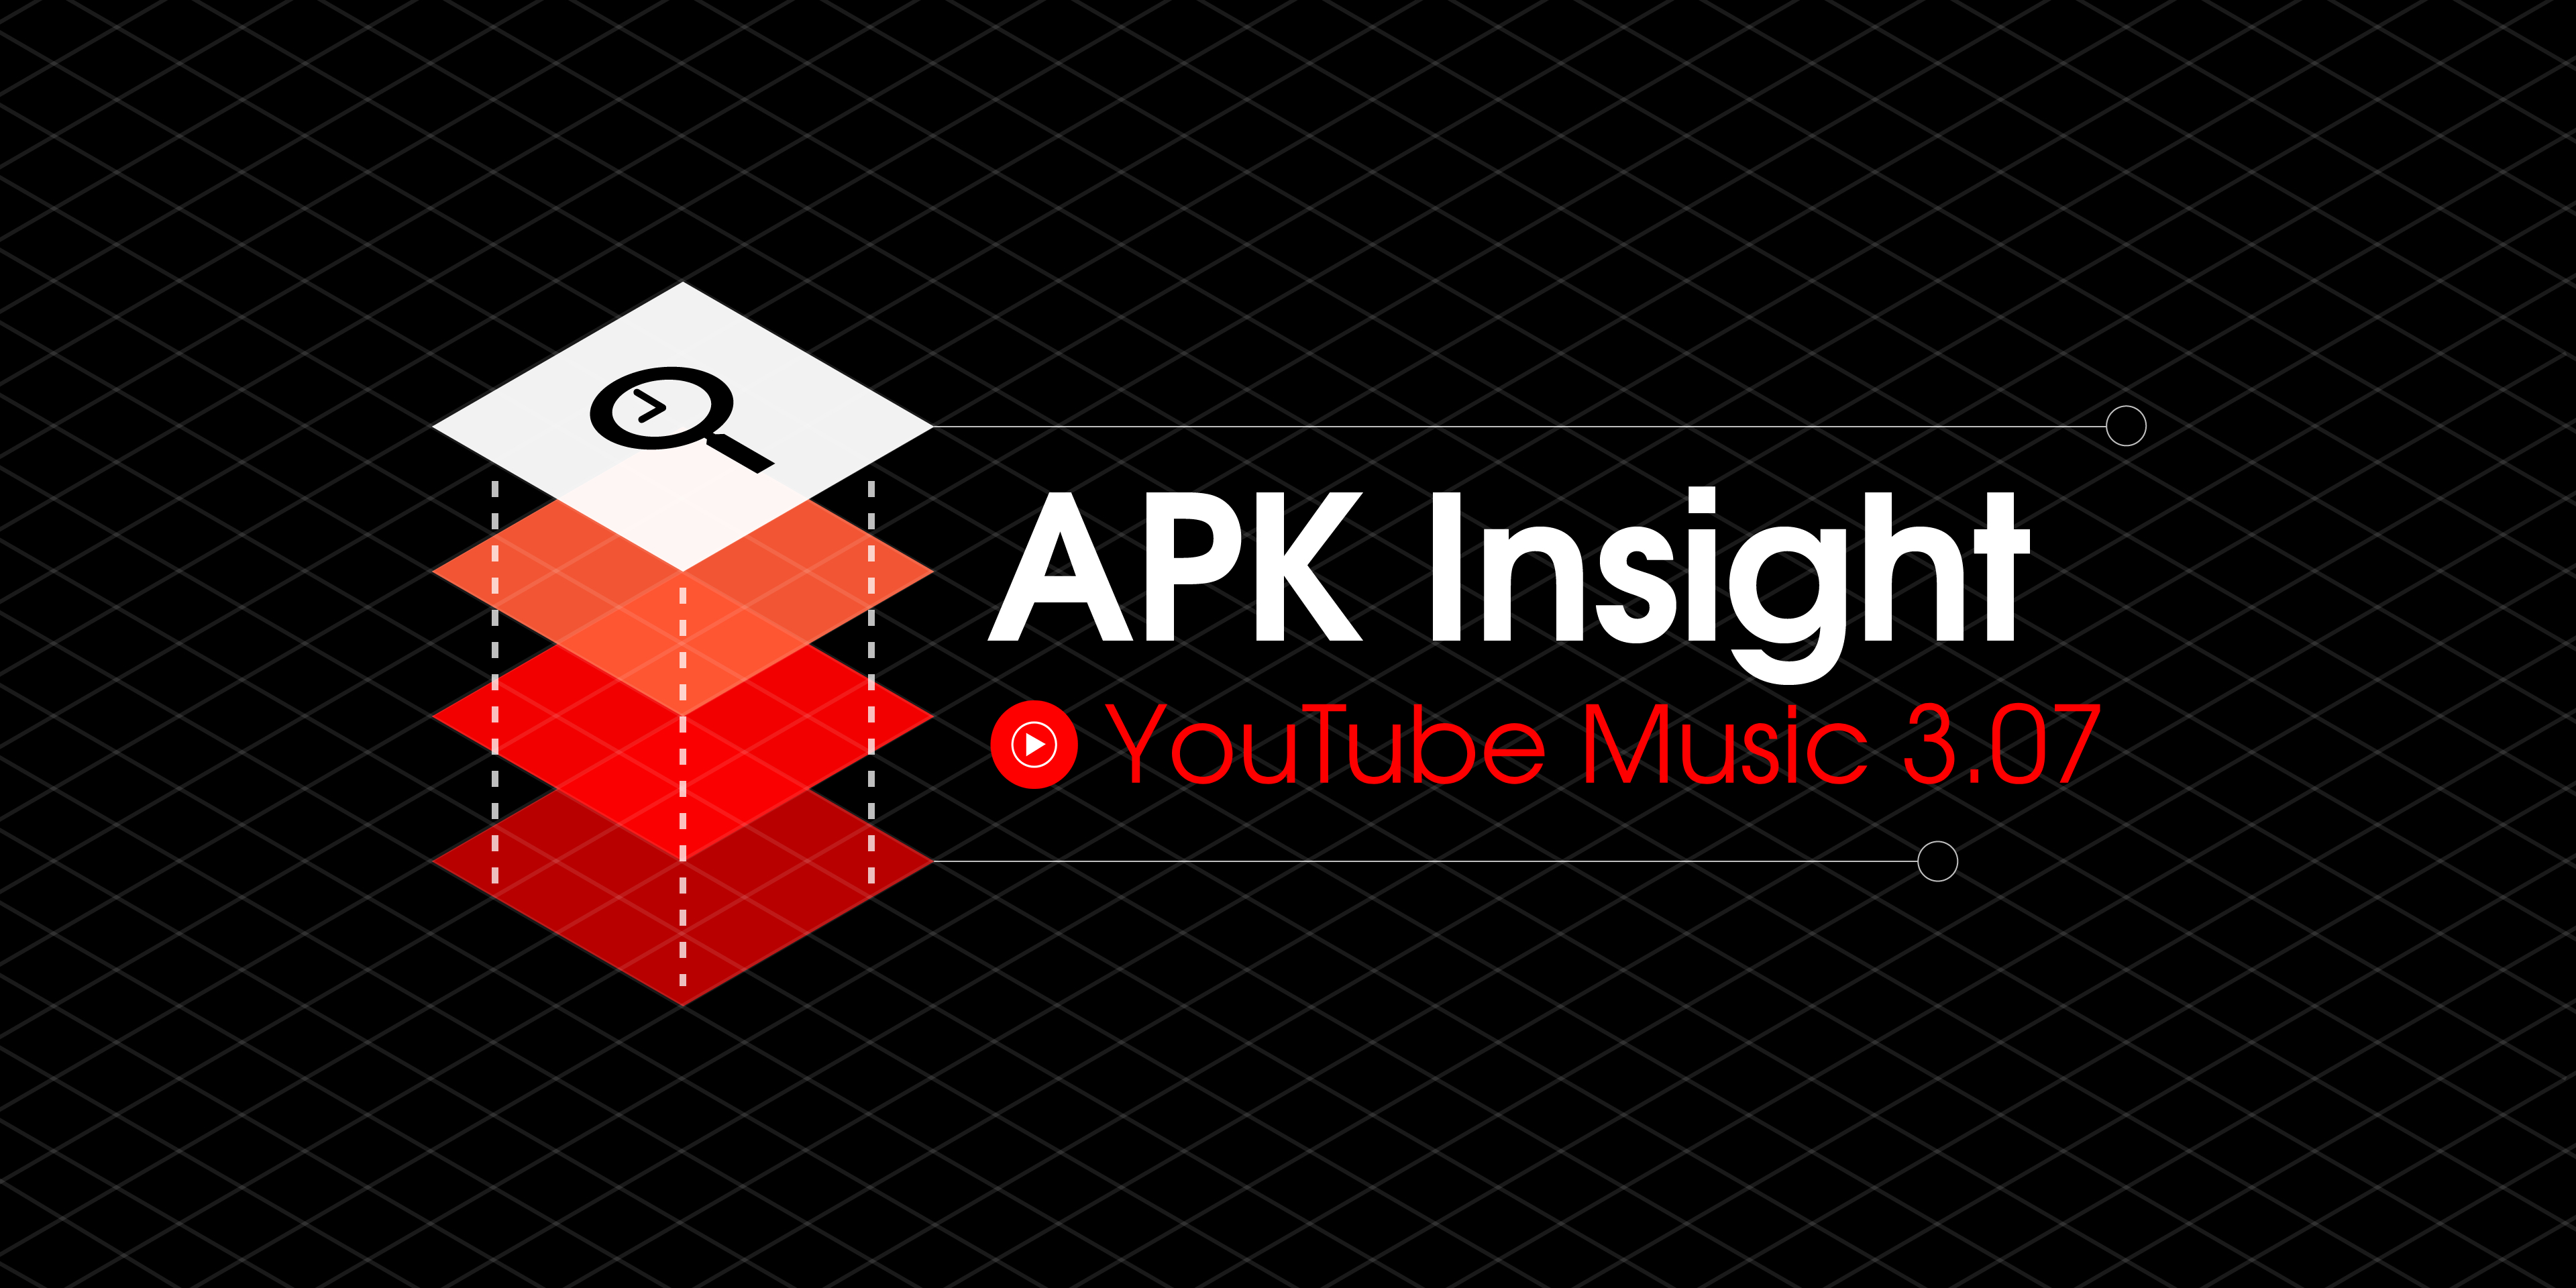 YouTube Music 3.07 lets you manually improve recommendations, adds animated thumbnails on iOS [APK Insight]